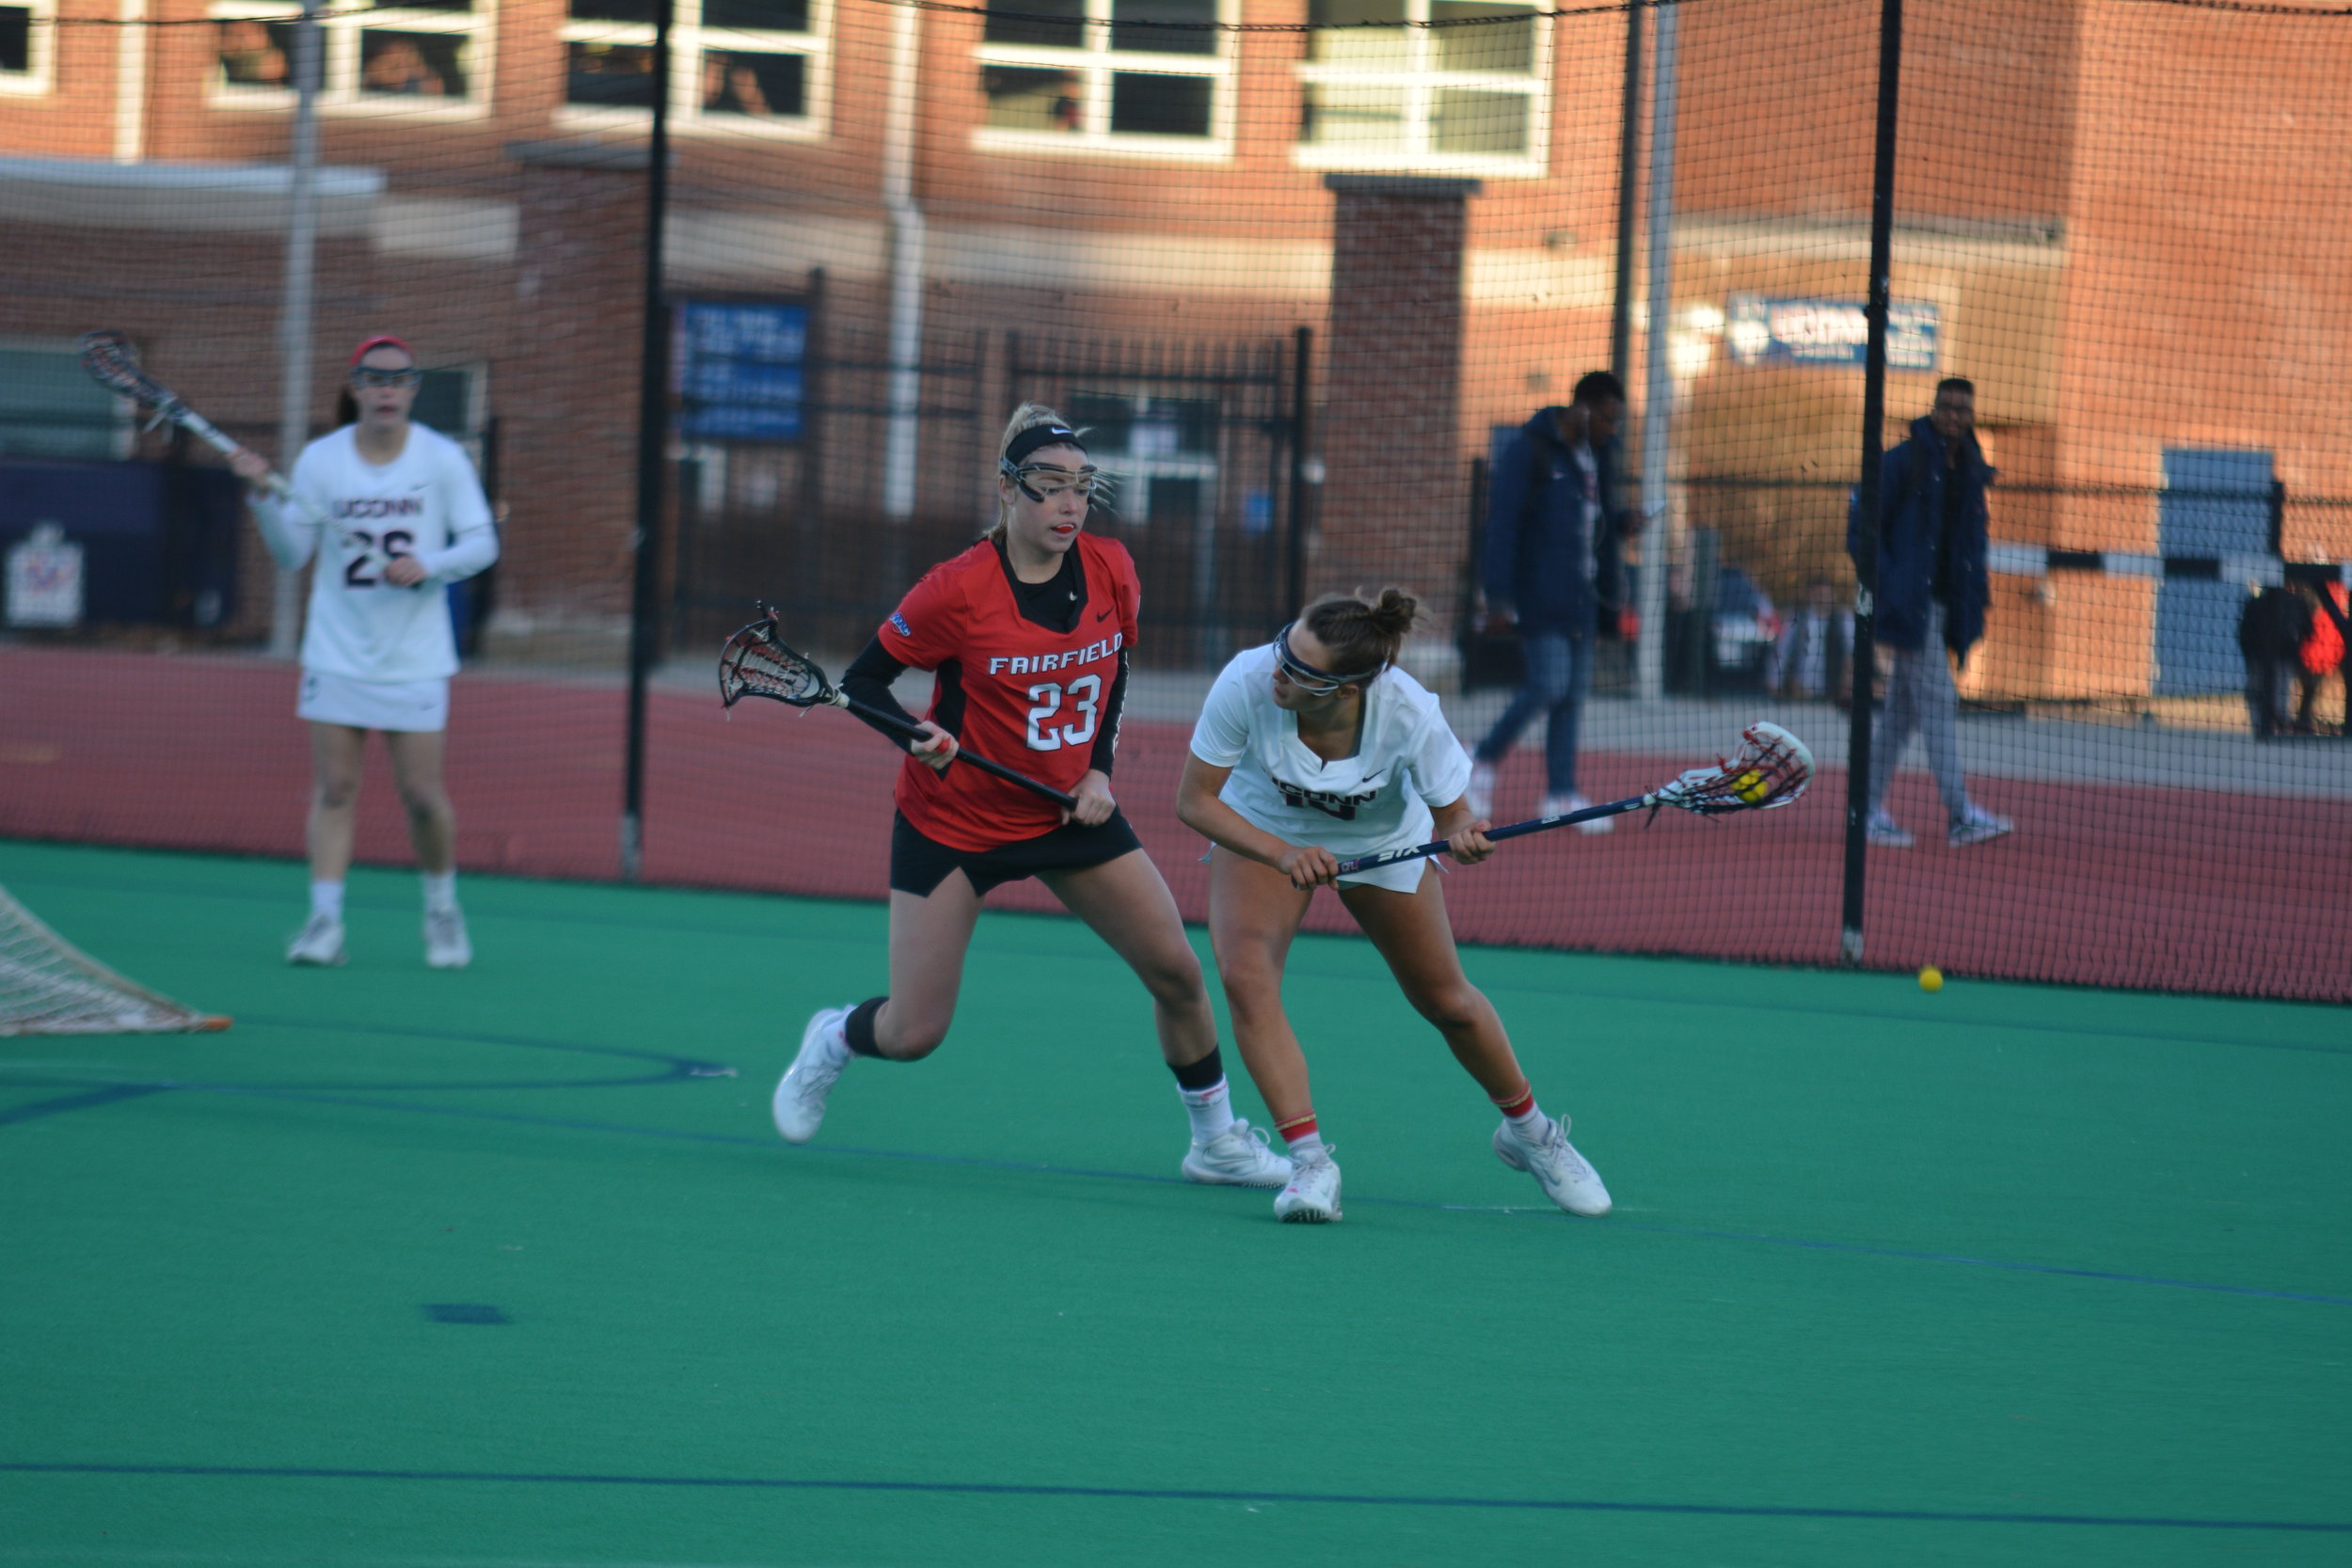 UConn hit the 13-goal threshold for the fourth time this season on Saturday, yet surprisingly they are just 1-3 in those games. (File photo/The Daily Campus)